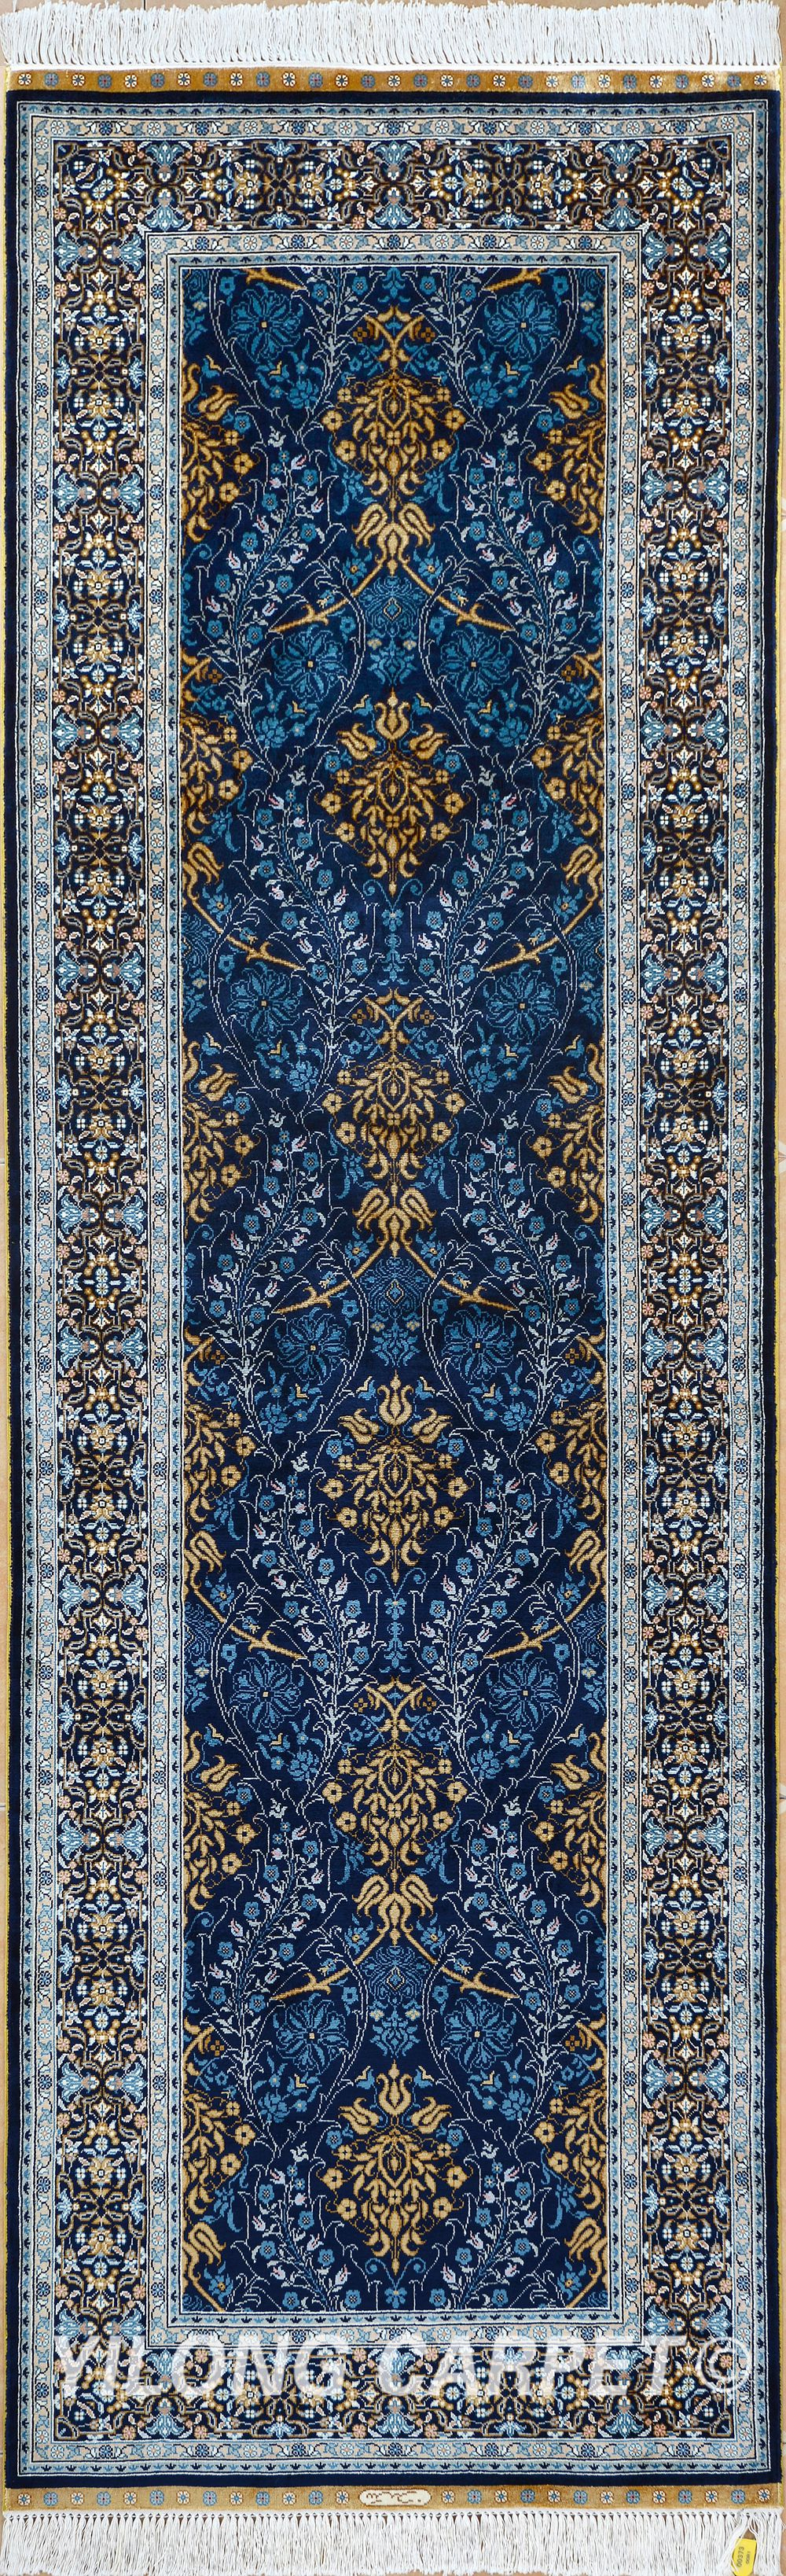 2 5x7 5 Ft Rug Runner Persian Oriental Turkish Carpet Hand Knotted Silk Tabriz Rugs Hereke Area Double Knots From X3 To 14 X20 Color Blue